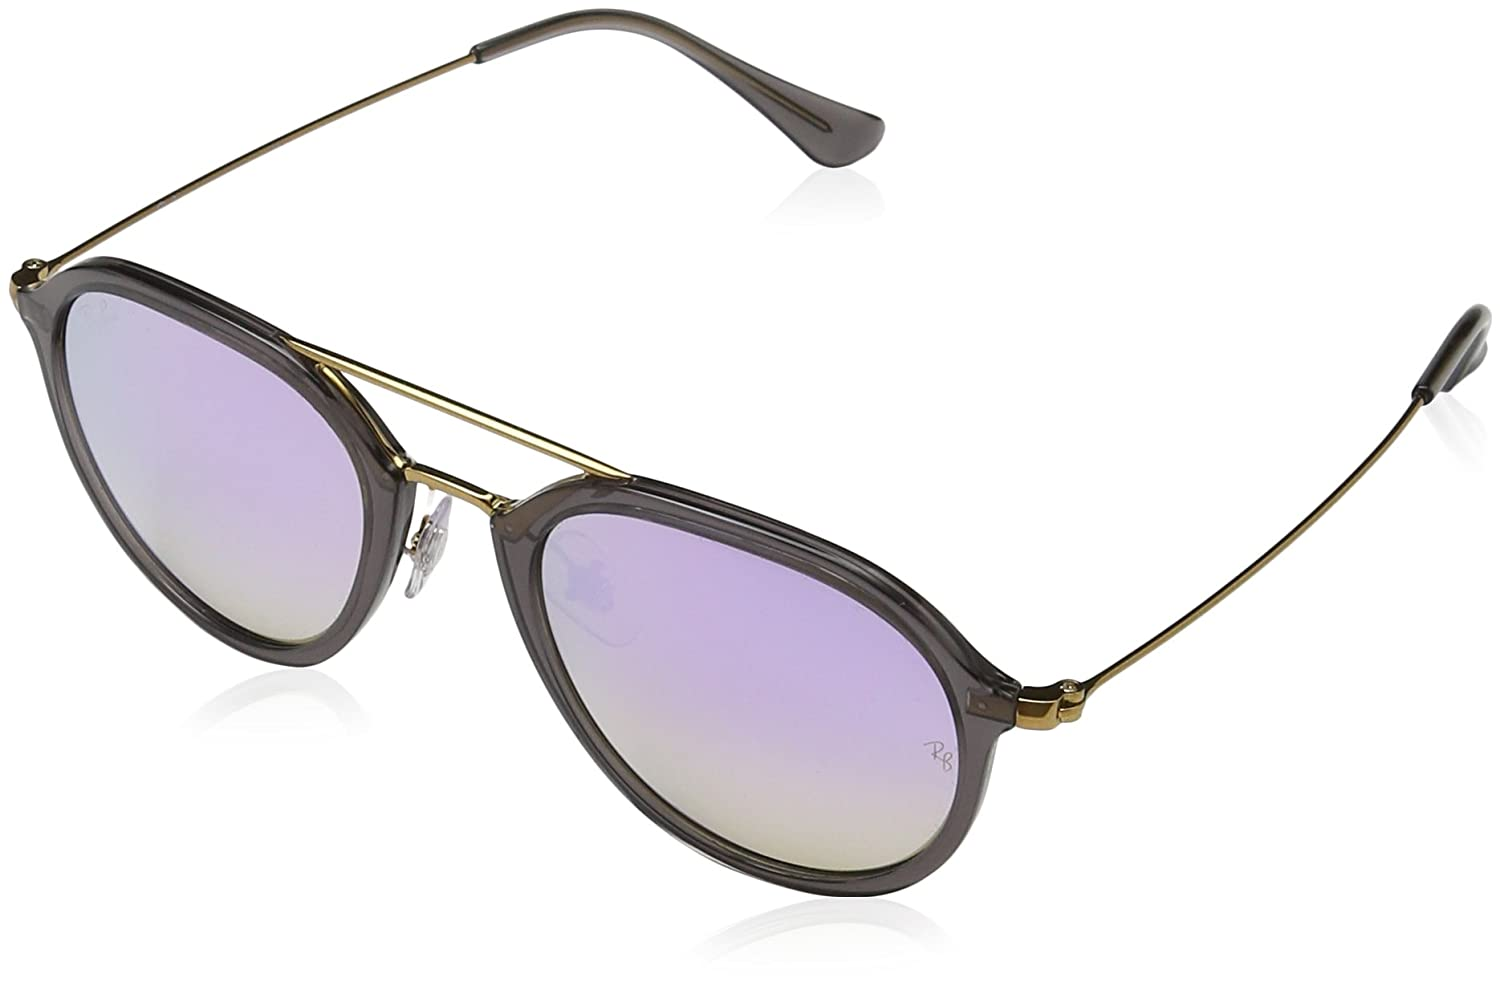 RAY-BAN Rb4253 Gafas de sol, Gris/Bronce-Cobre/Lila Degradada (Shiny Grey), 50 Unisex-Adulto